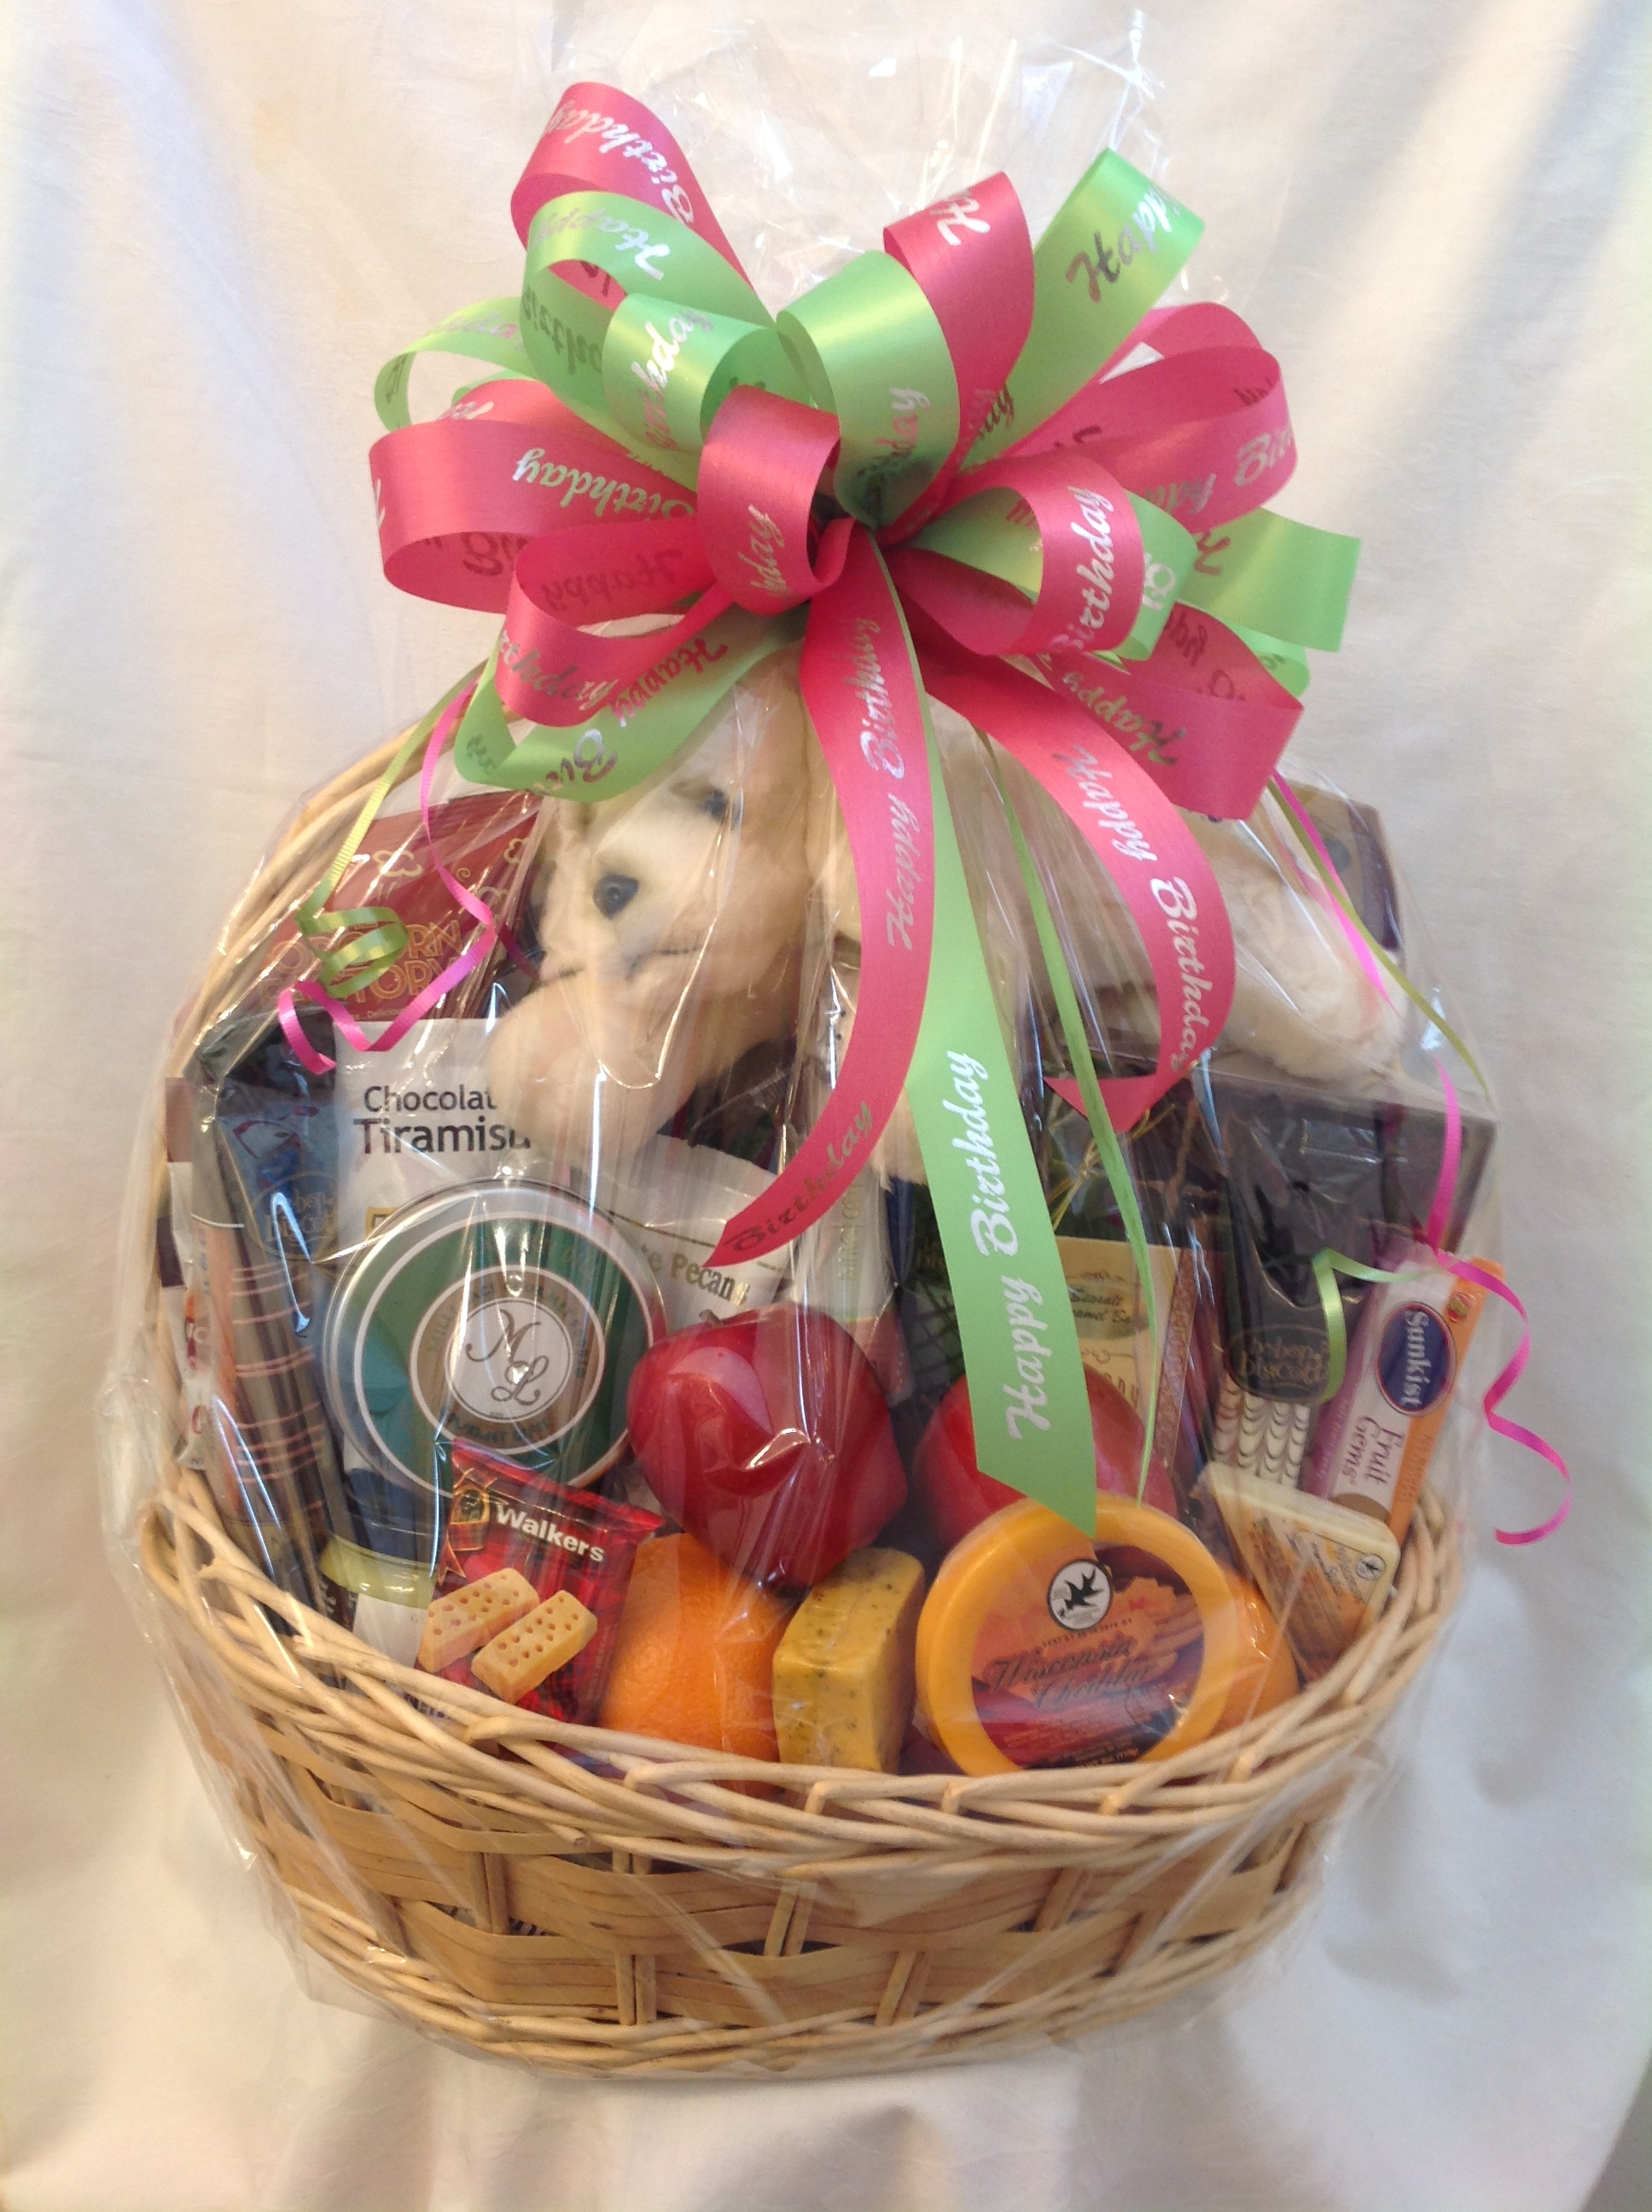 Whatever the occasion, a gift basket always sends the right message. That's why at herelfilesvj4.cf we offer more than 1, gift baskets perfect for any occasion, so you can say,